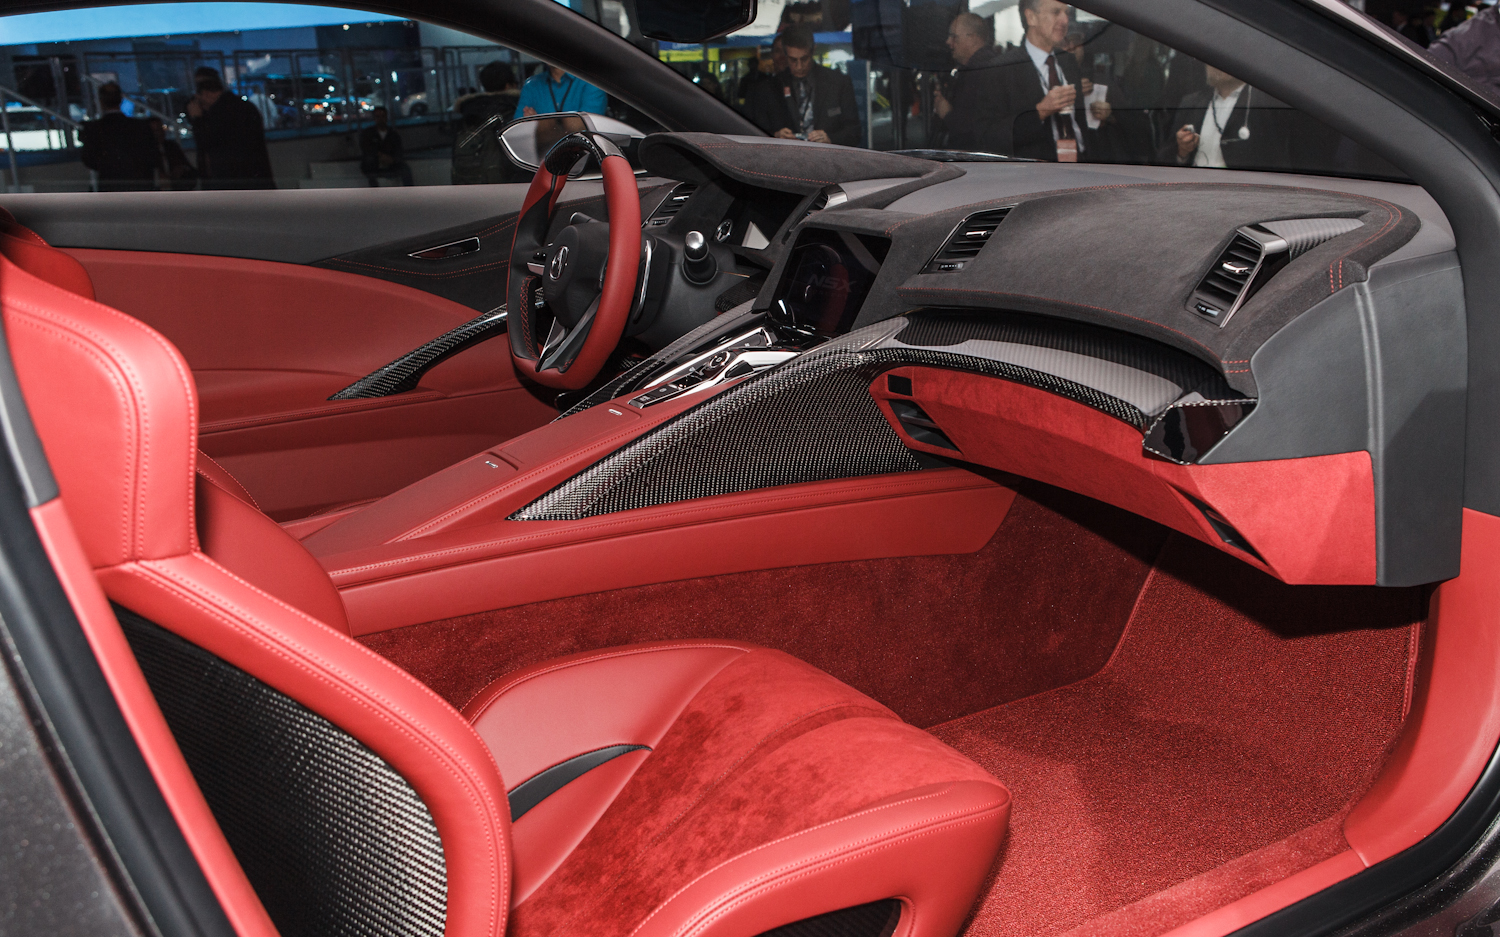 New 2015 Acura NSX Interior Concept